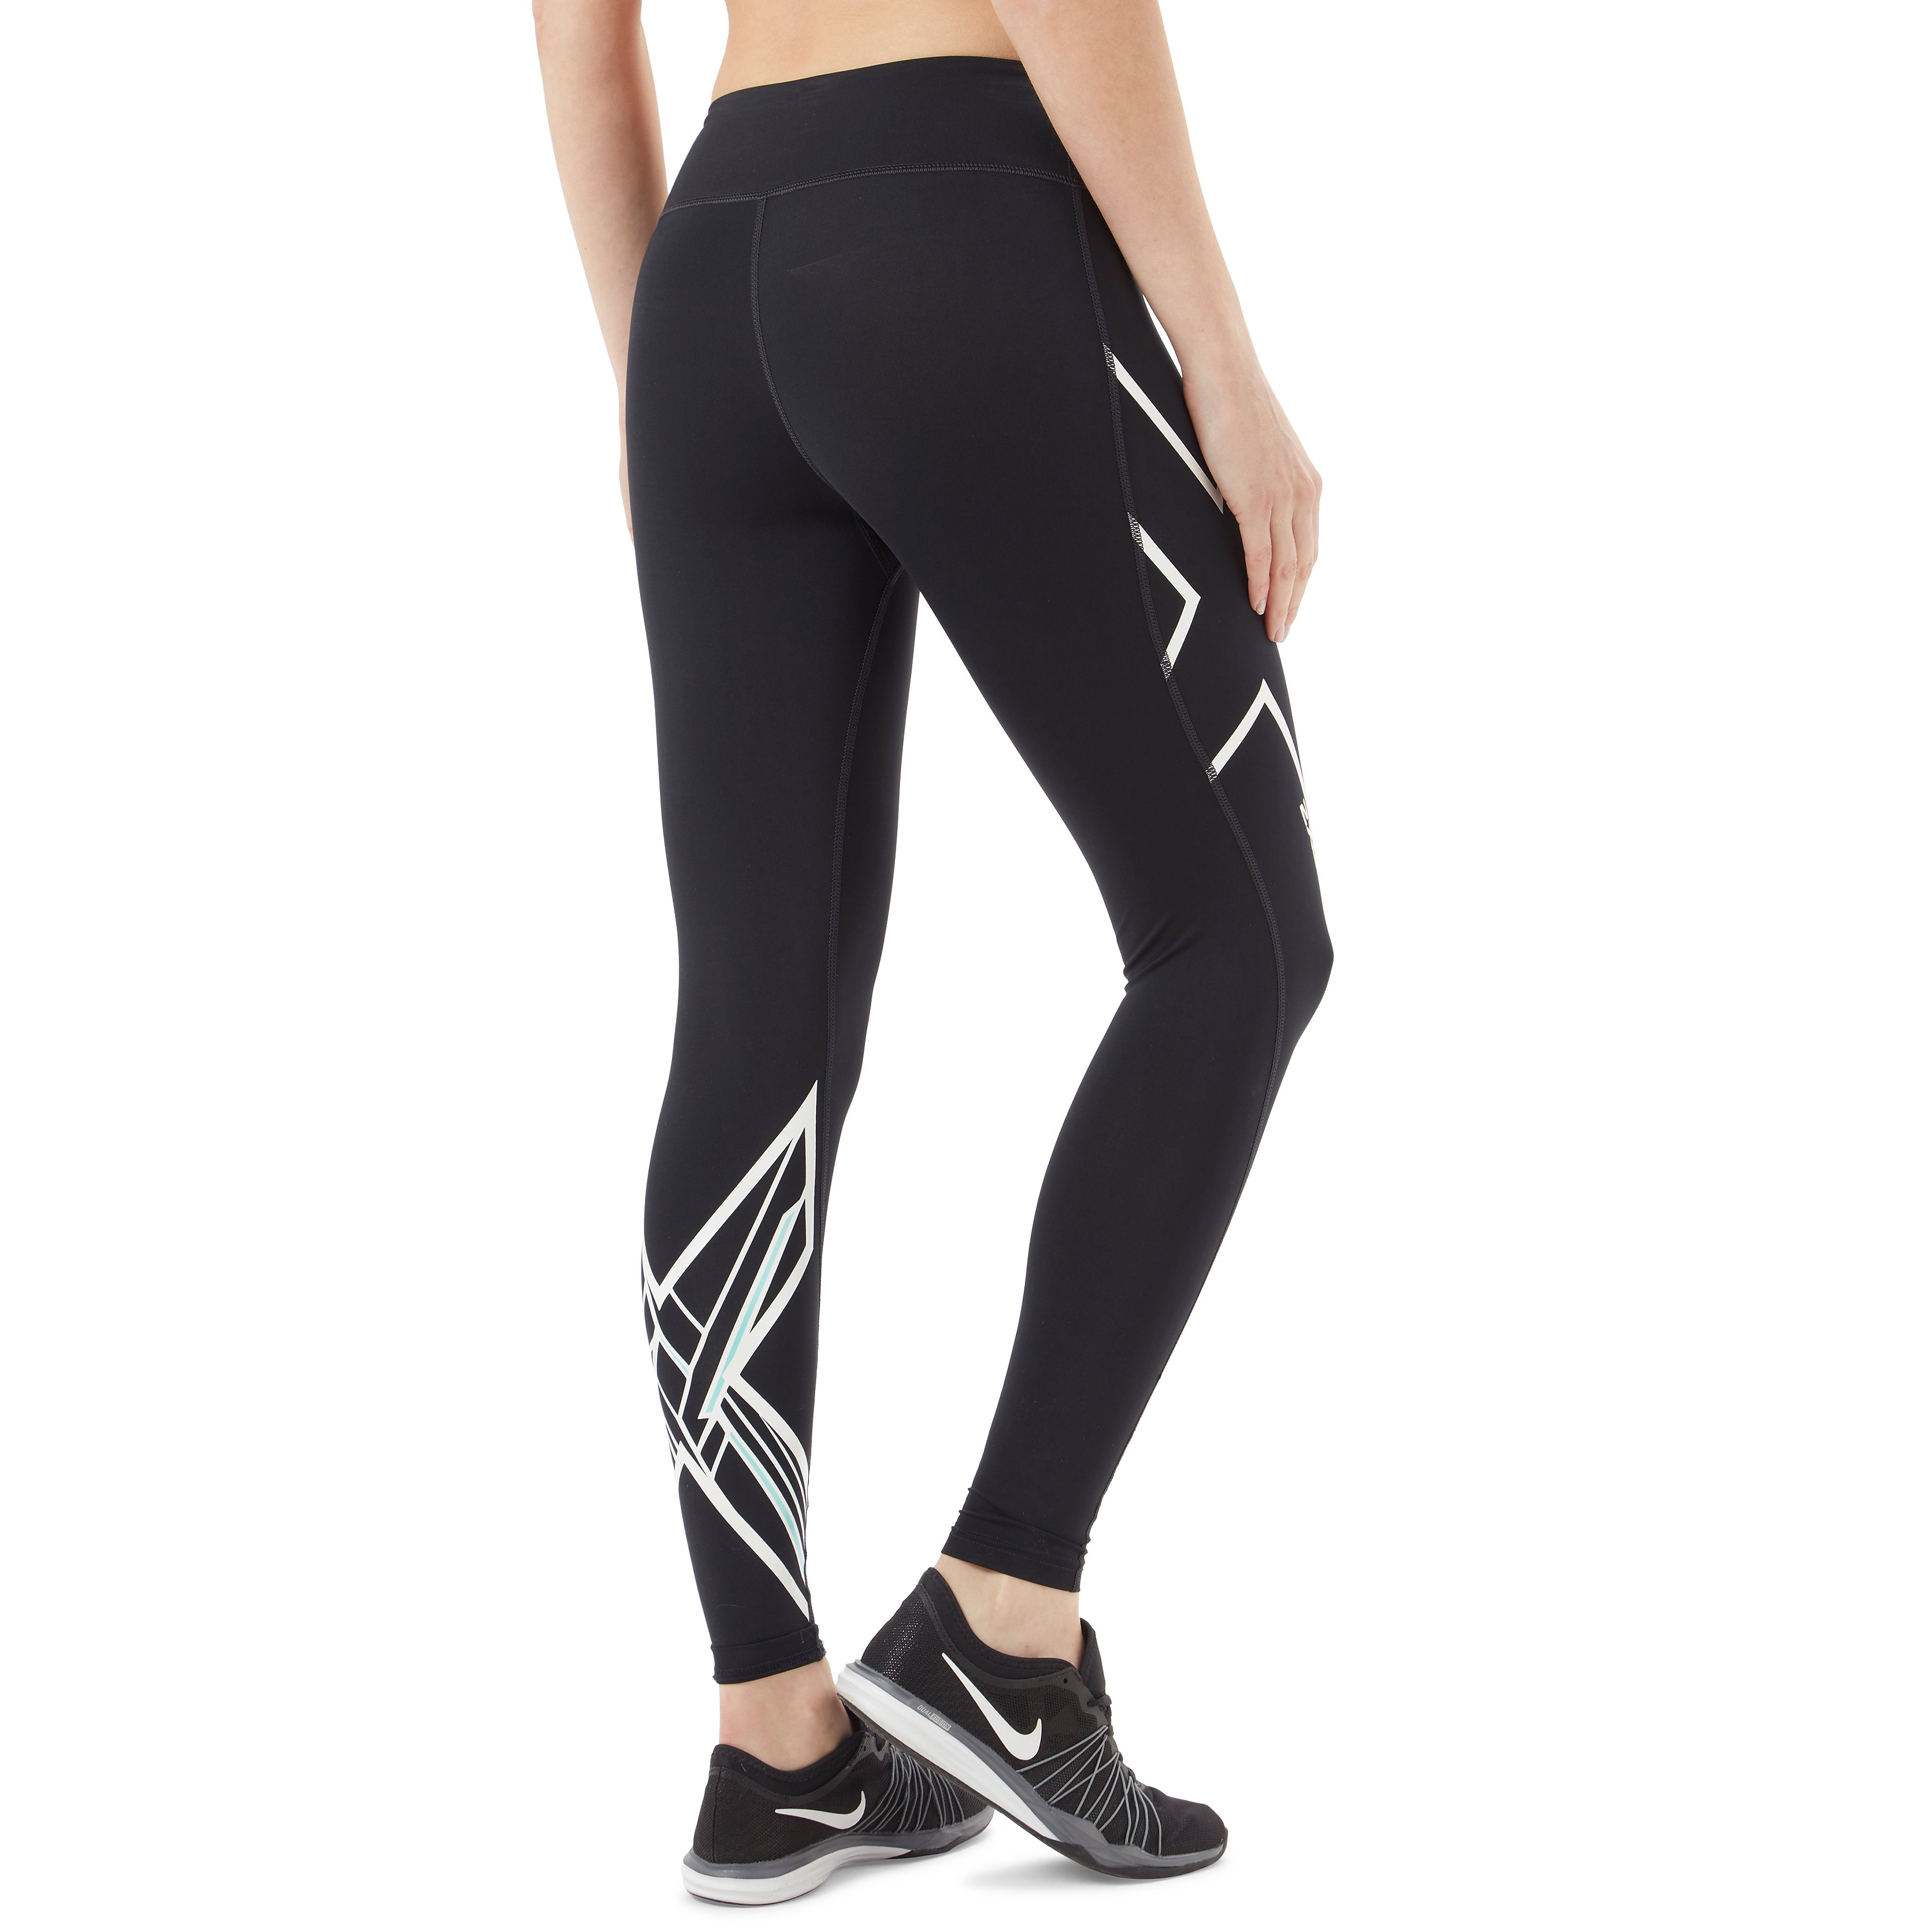 2XU Ice X Mid-Rise Women's Compression Tights